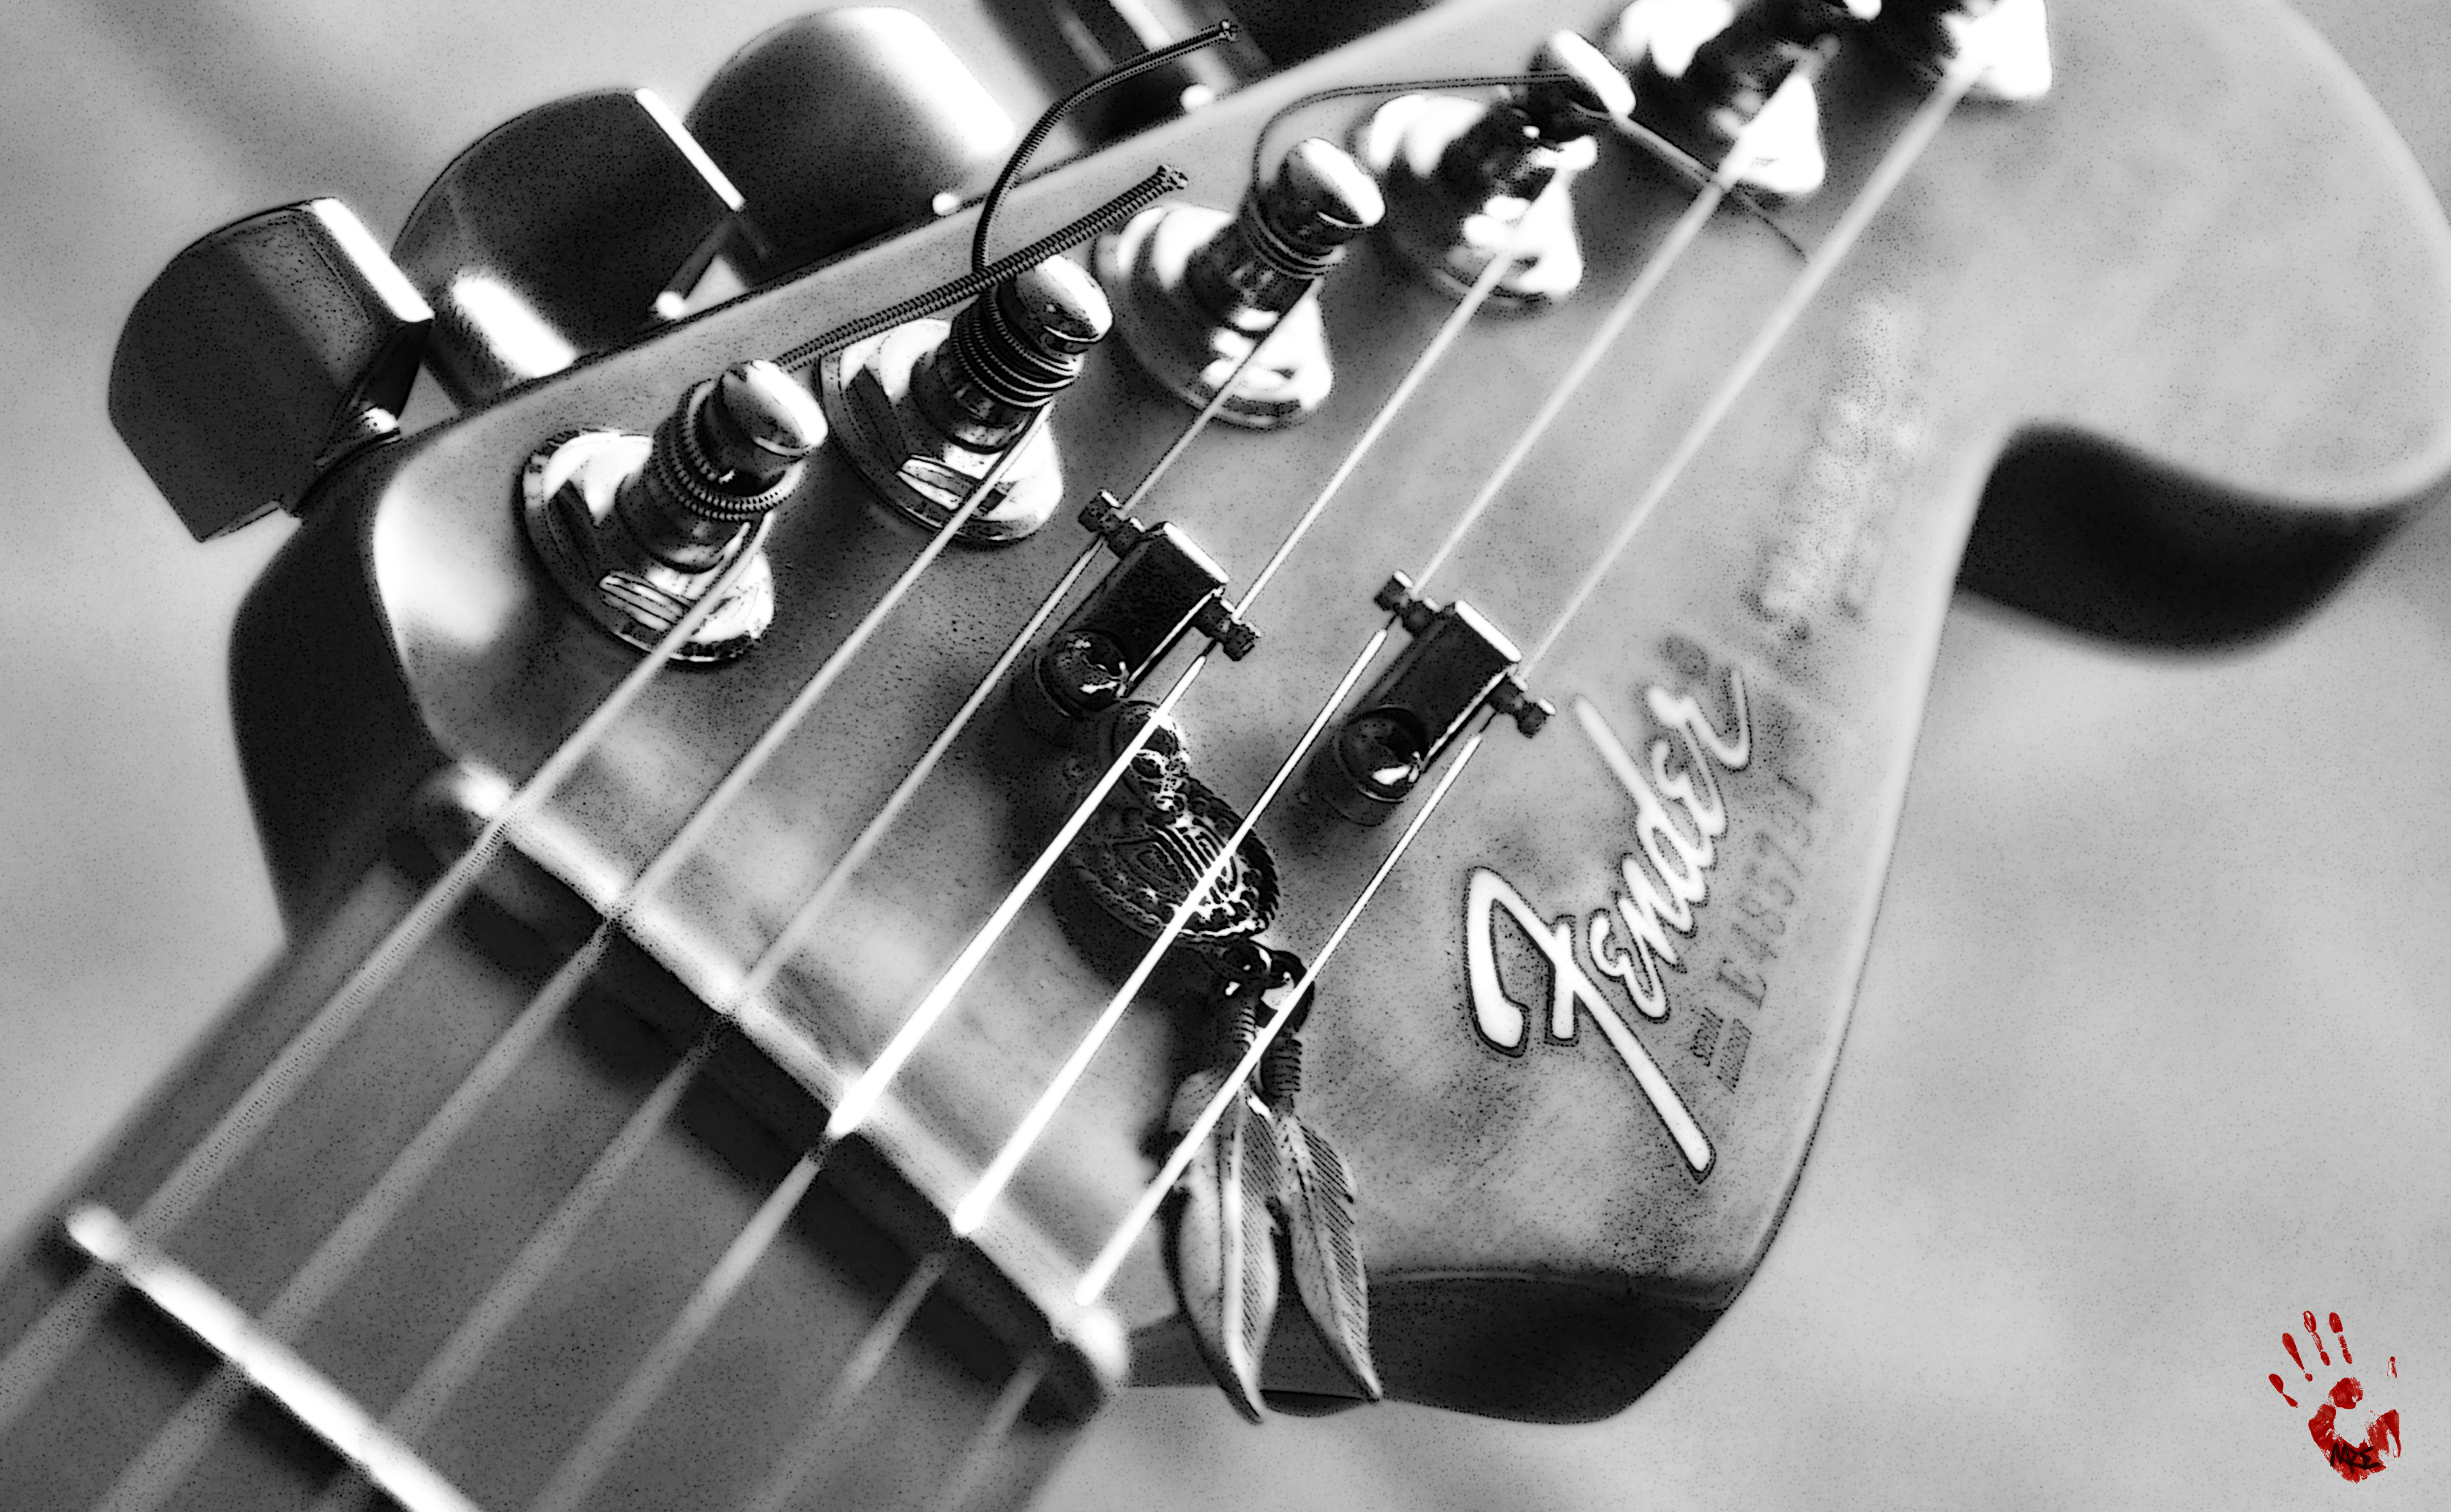 fender jaguar wallpaper - photo #18